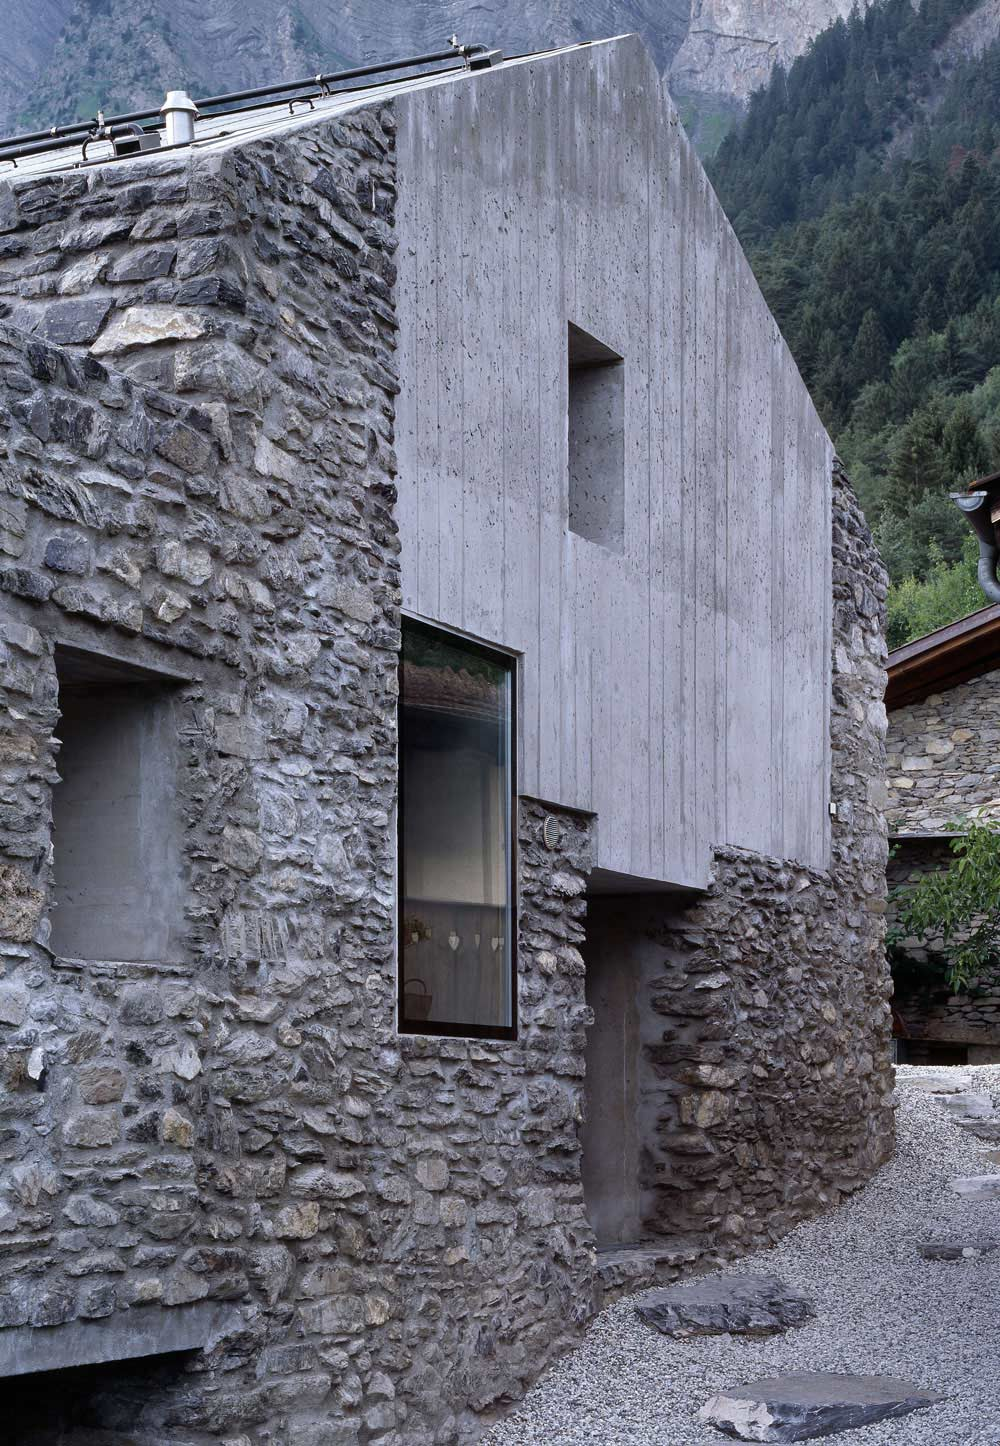 Exposed Concrete, Stone Walls, Renovation in Chamoson, Switzerland by Savioz Fabrizzi Architecte